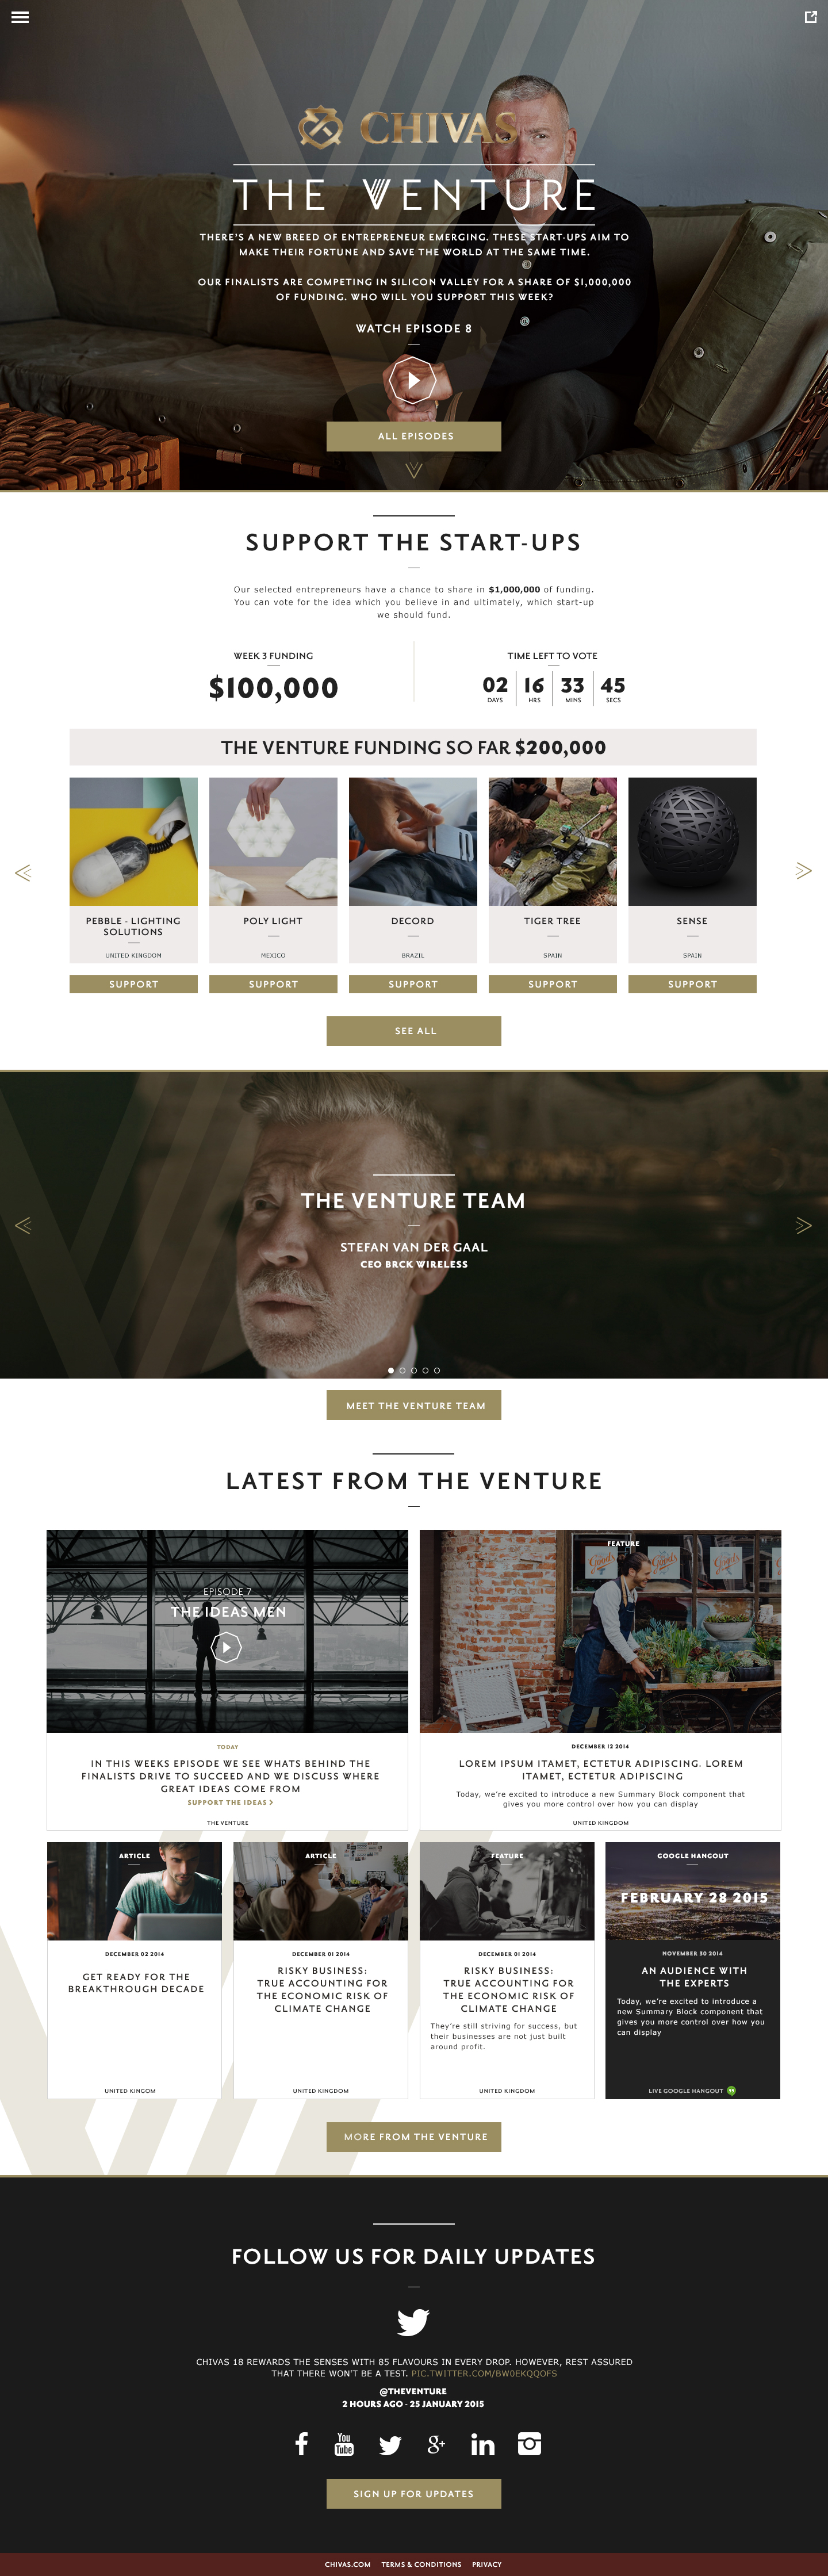 PHASE2_TheVenture_01_2_HOME_GLOBAL.jpg